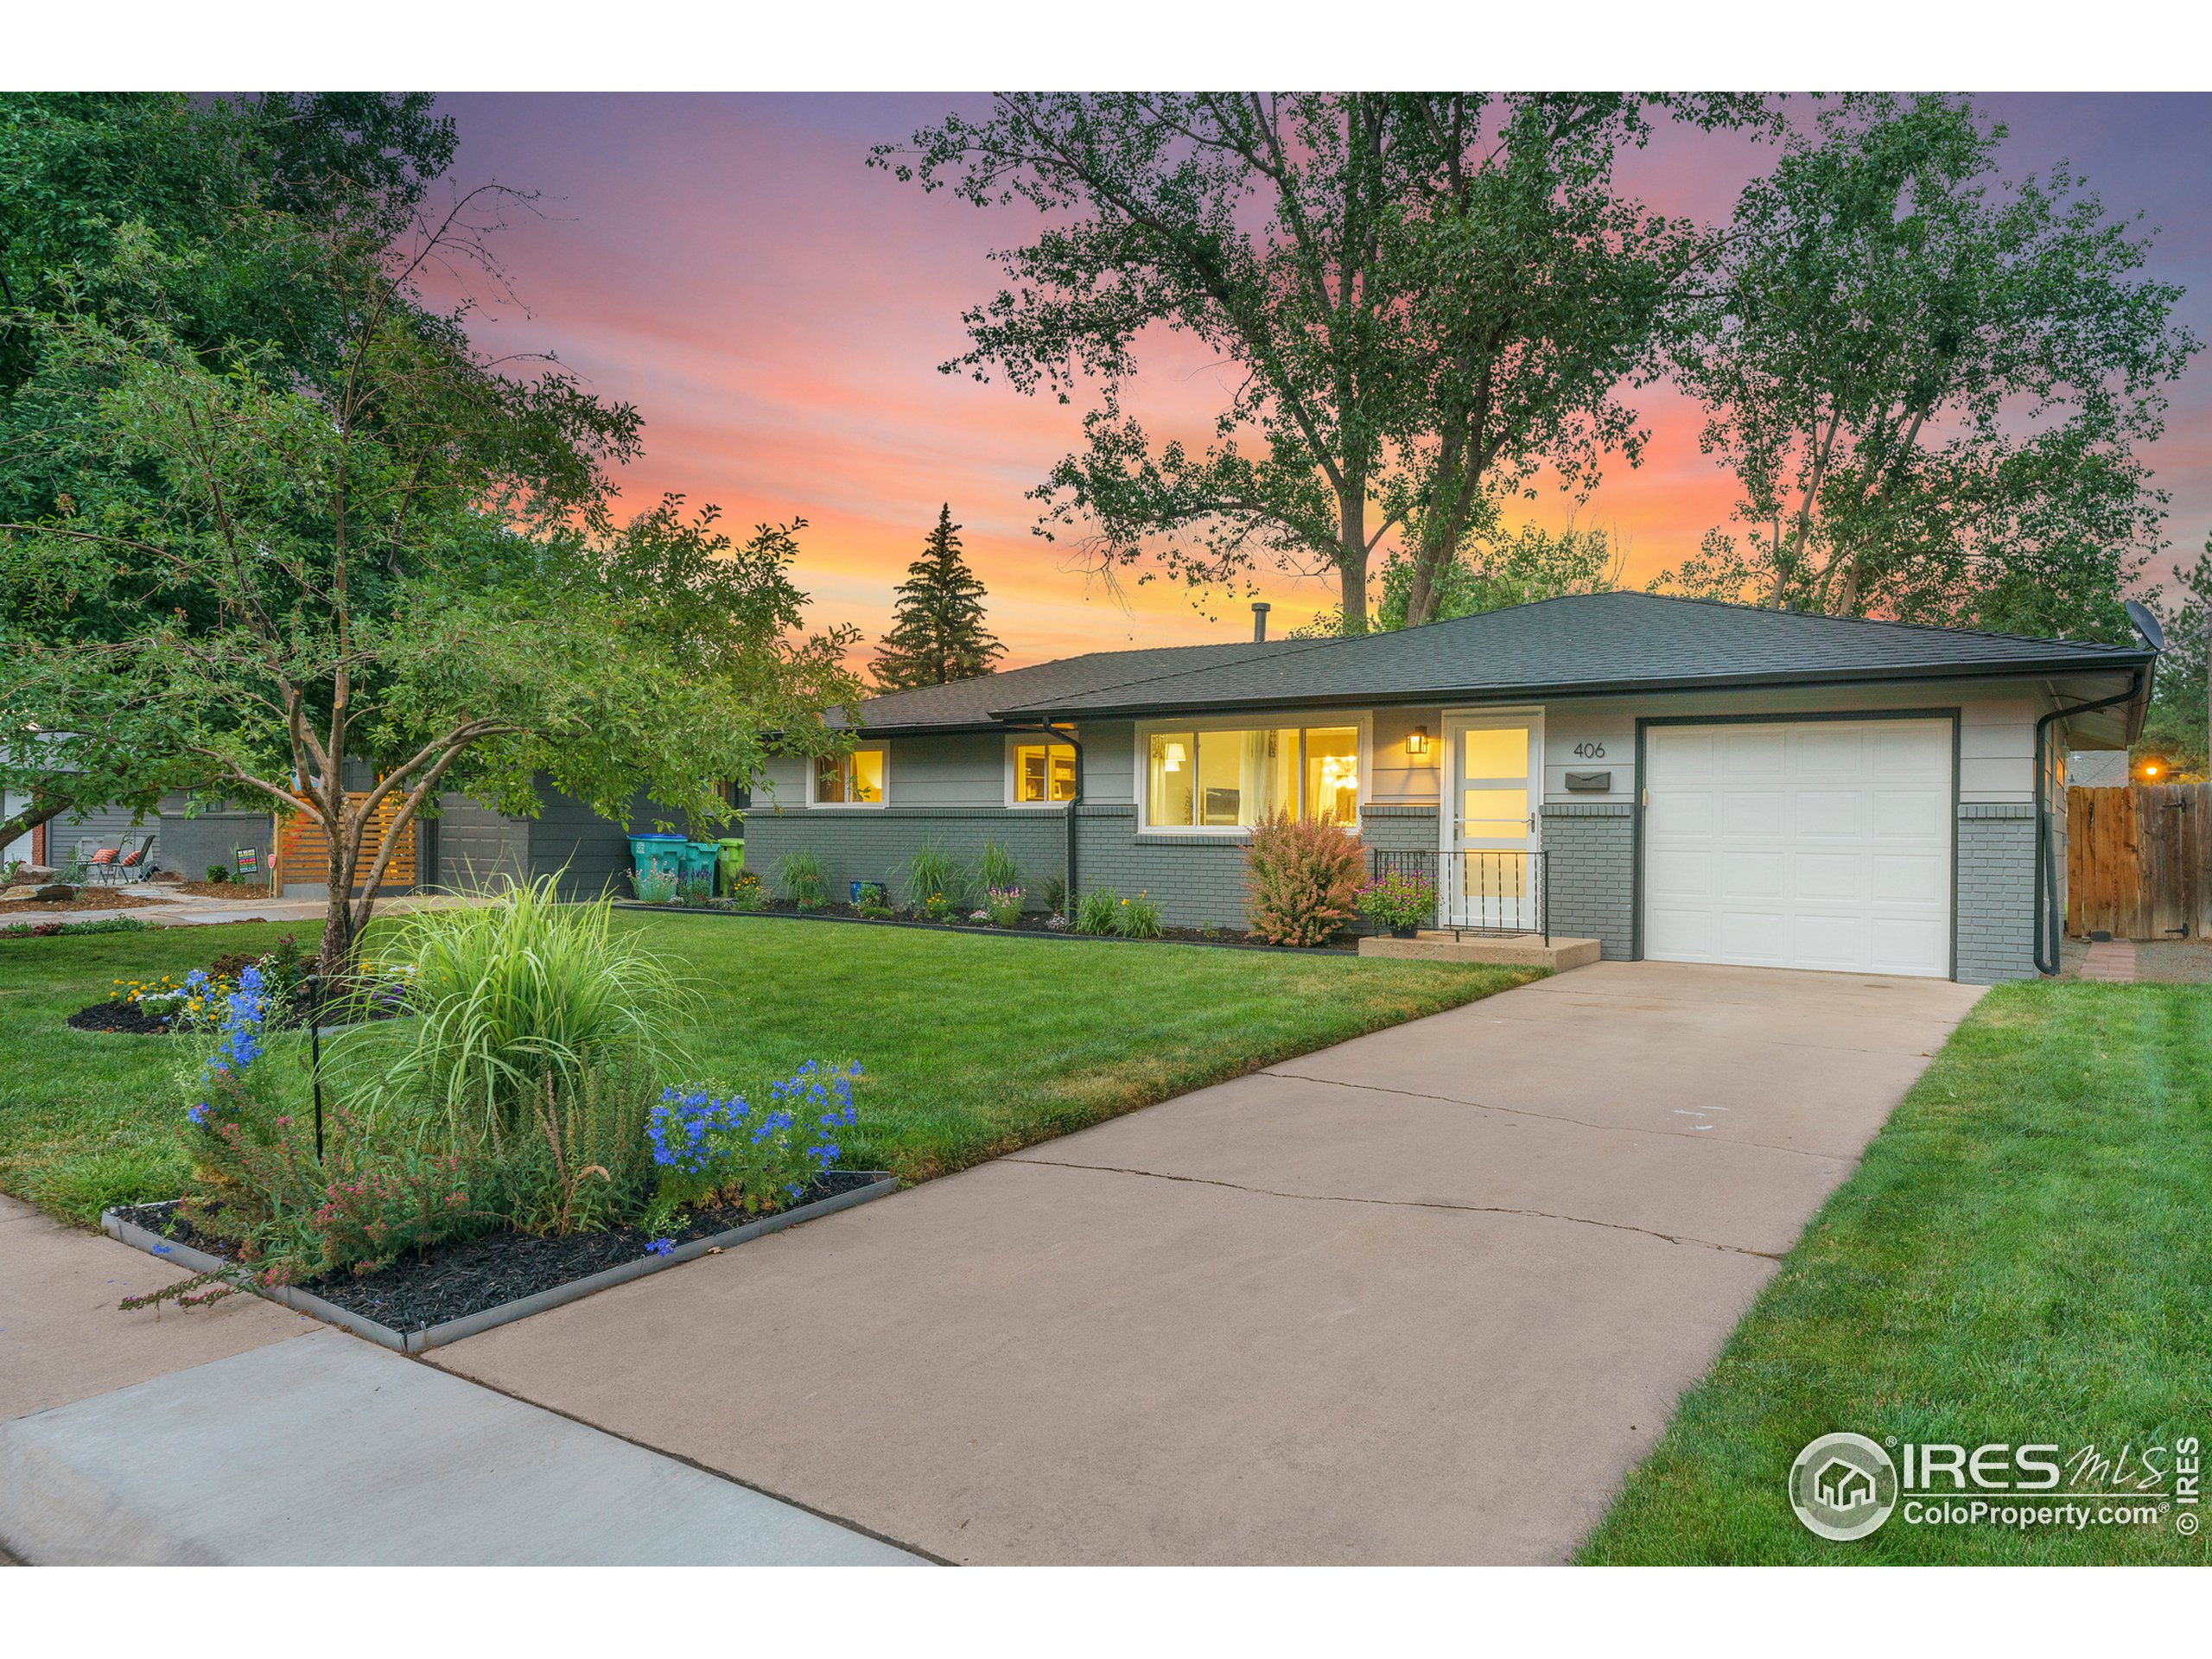 Live in a home that feels like its straight out of a magazine, that is minutes from Old Town Ft. Collins and city park! Upgrades have been made in almost every square inch of this home. Expansive lot that feels like a park! Take advantage of living where you can walk or bike to all the coolest places and events throughout the year. Nothing needs to be done, it is move-in ready!